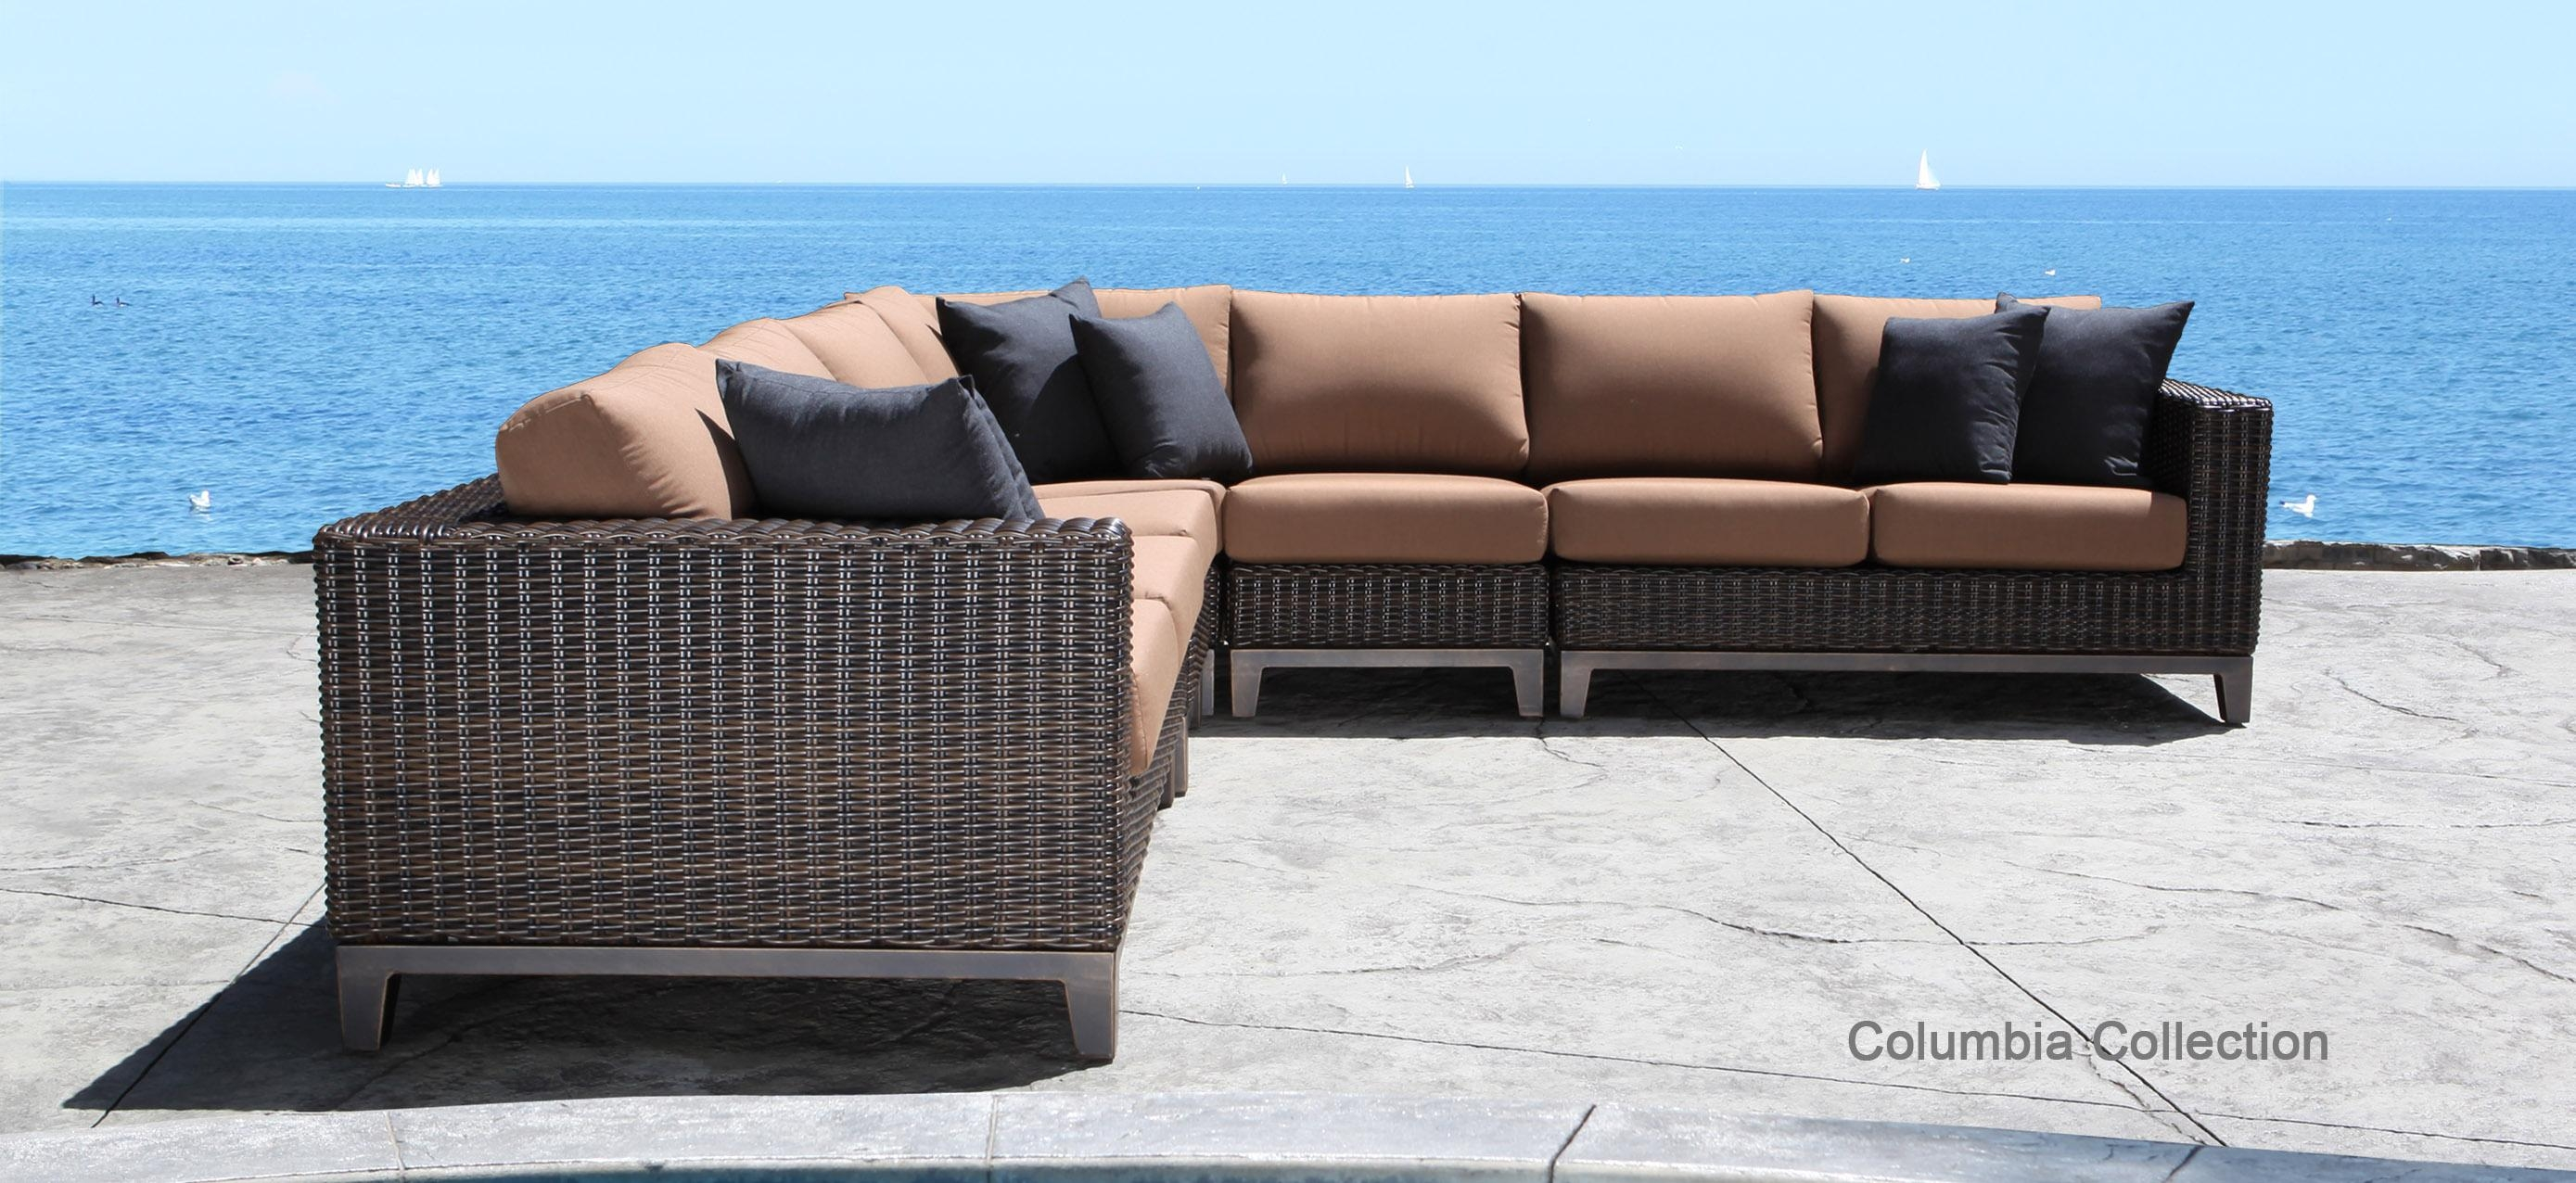 Modern Rattan Furniture And Outdoor Patio Sofas Image 16 Of 24 With Regard To Modern Rattan Sofas (View 6 of 23)